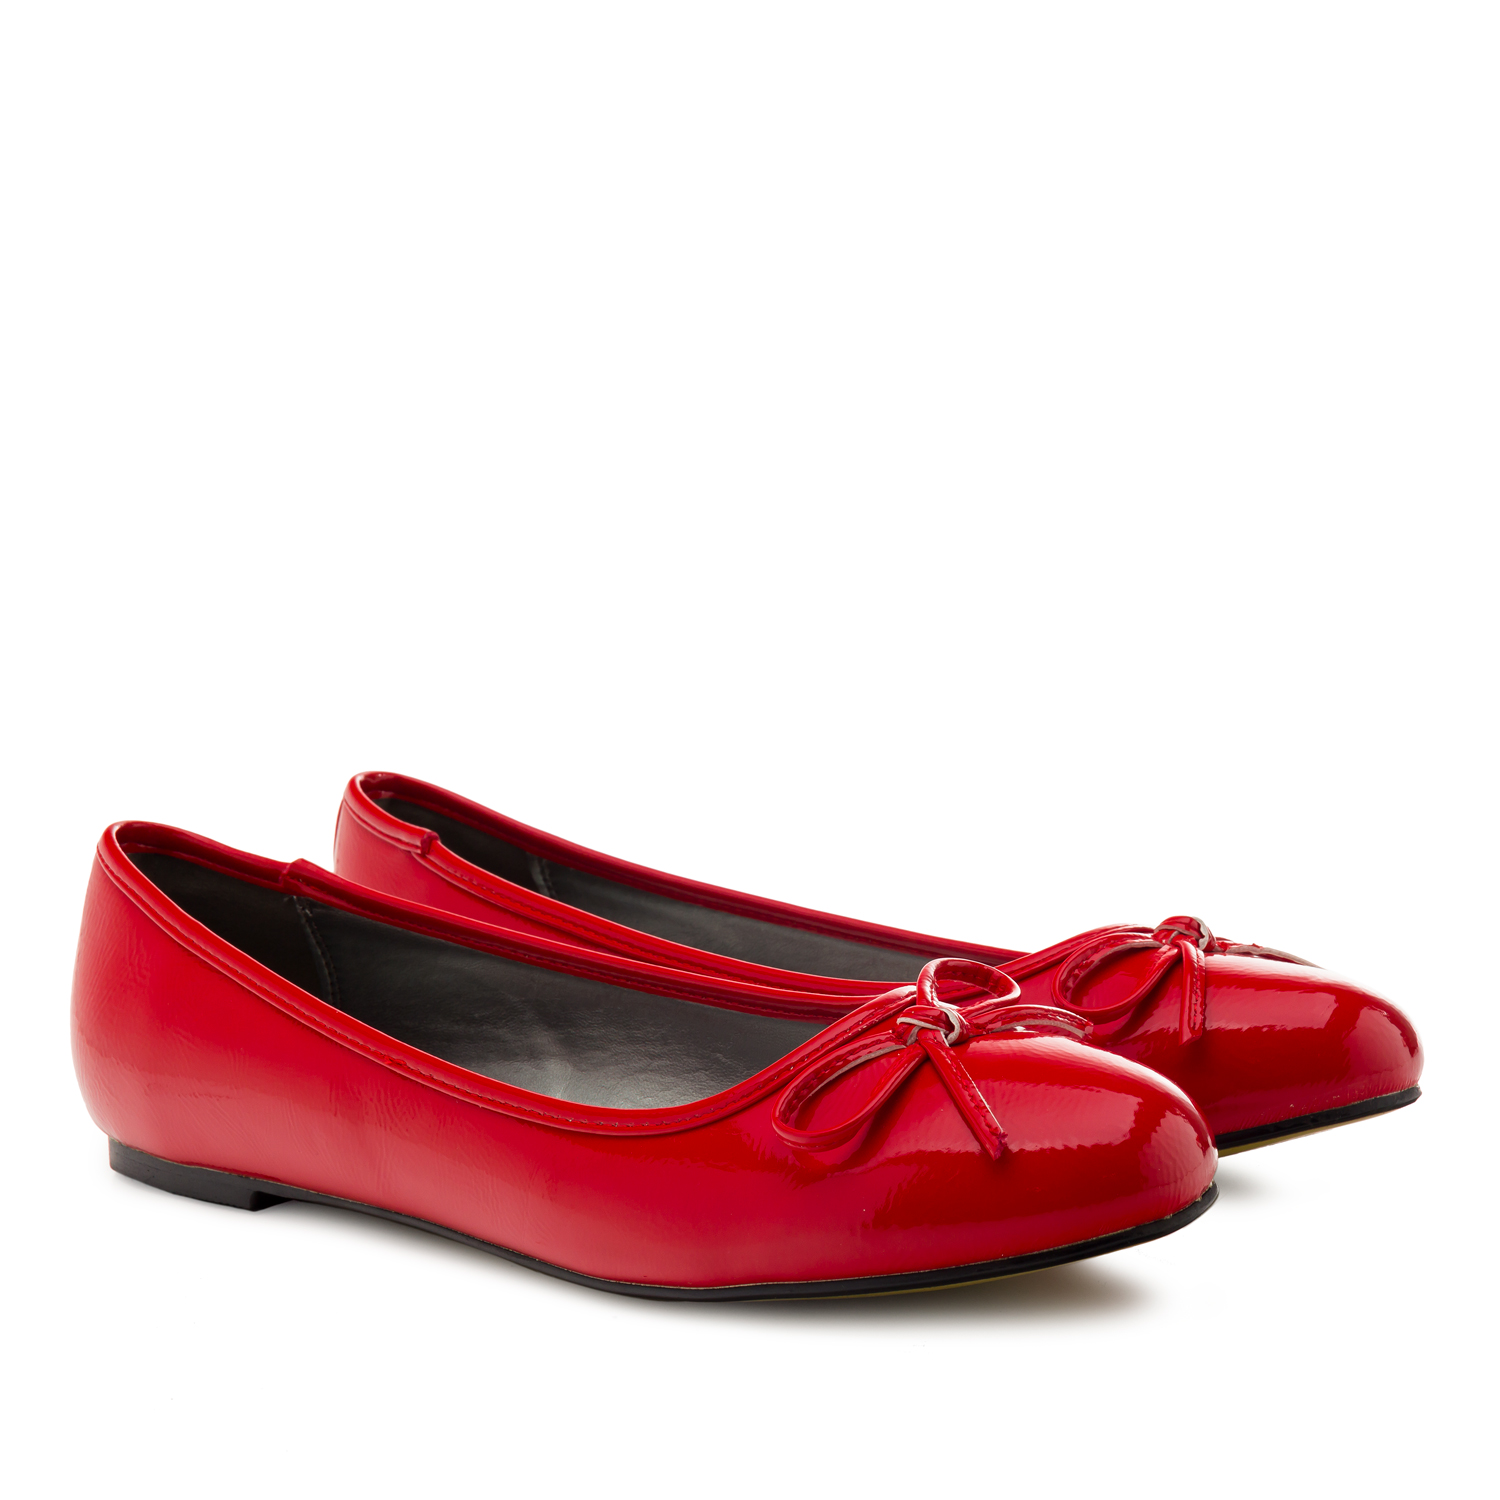 Red faux-patent leather Ballerinas with bow.